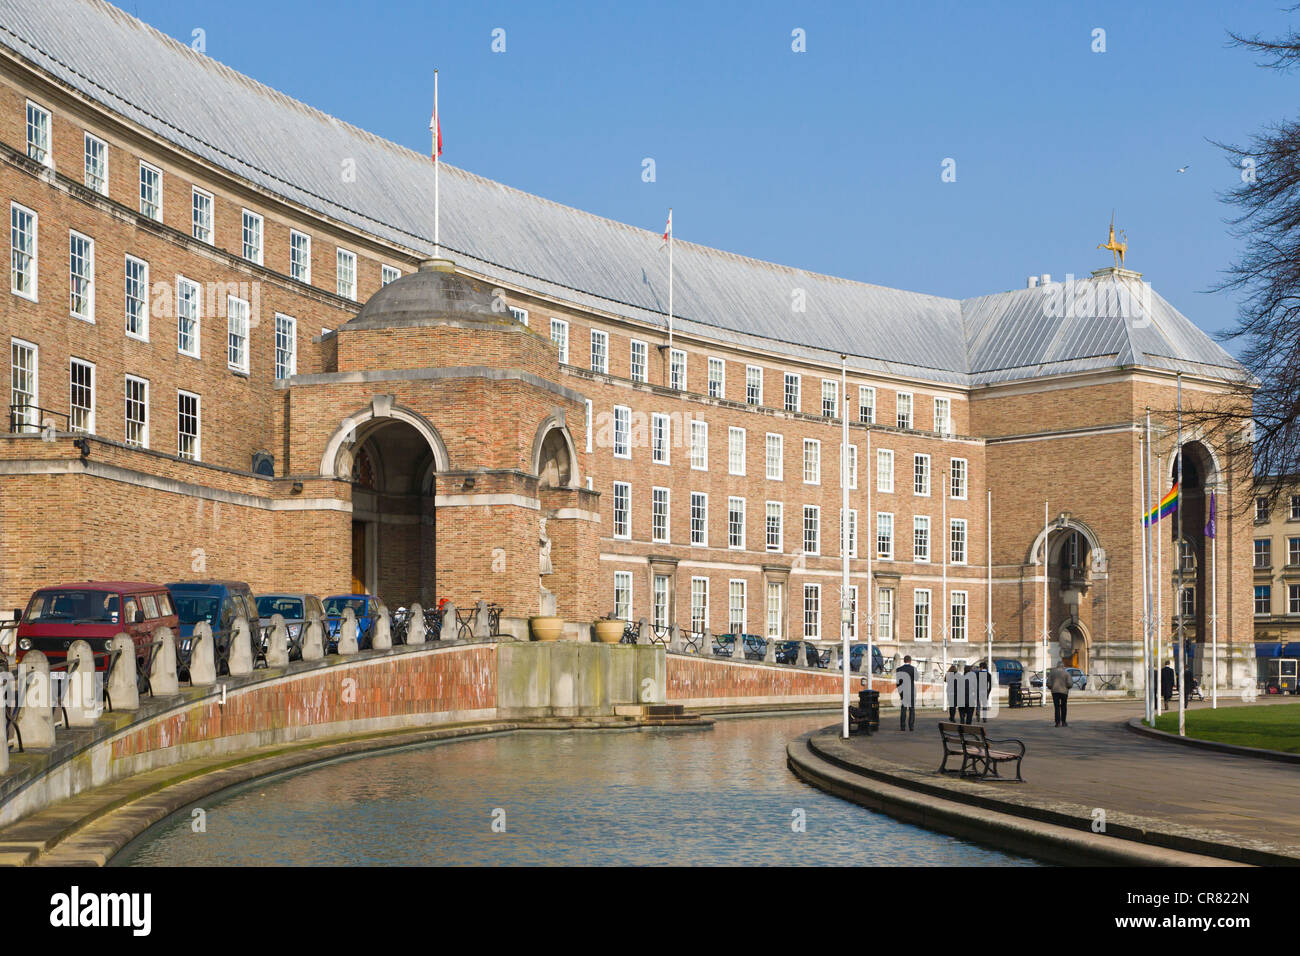 The Council House, seat of the local government, College Green, Bristol, Gloucestershire, England, United Kingdom, - Stock Image